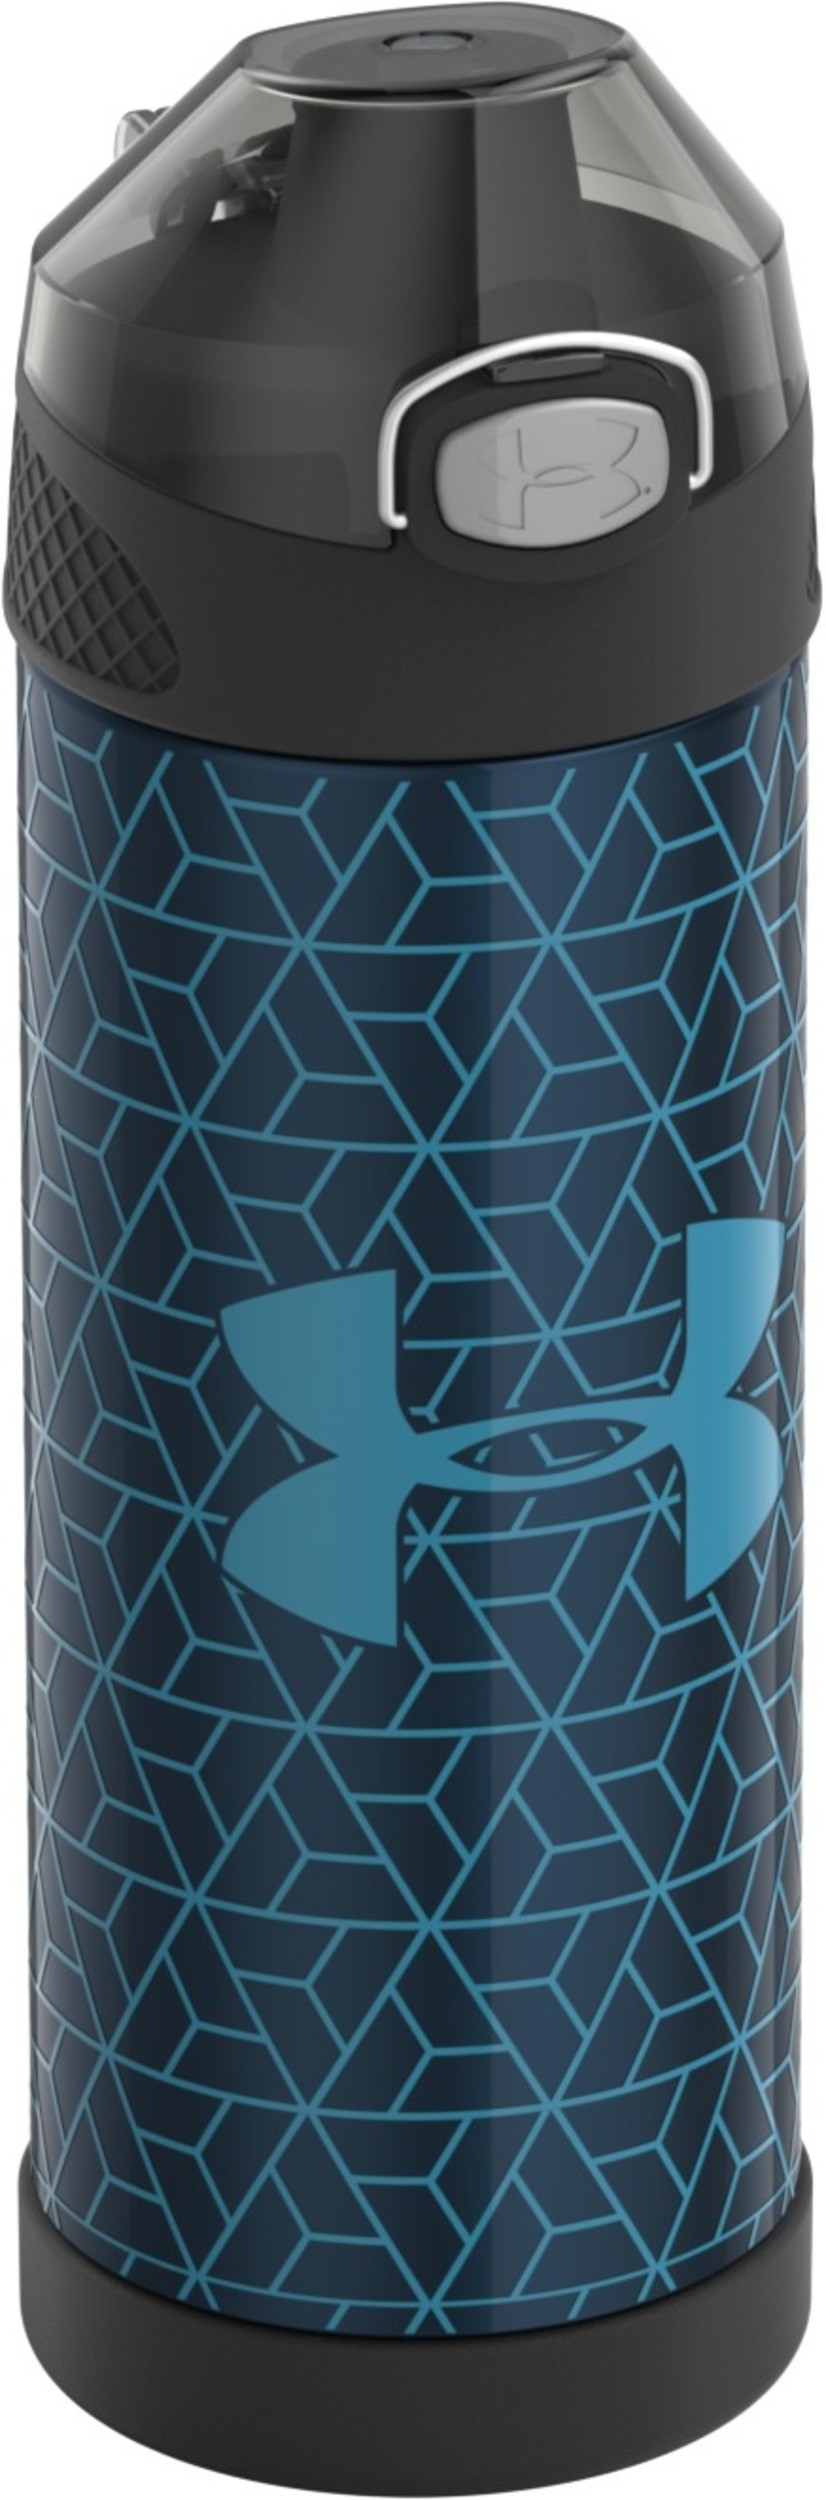 UA PROTEGE 16OZ STAINLESS STEEL WATER BOTTLE RAZOR